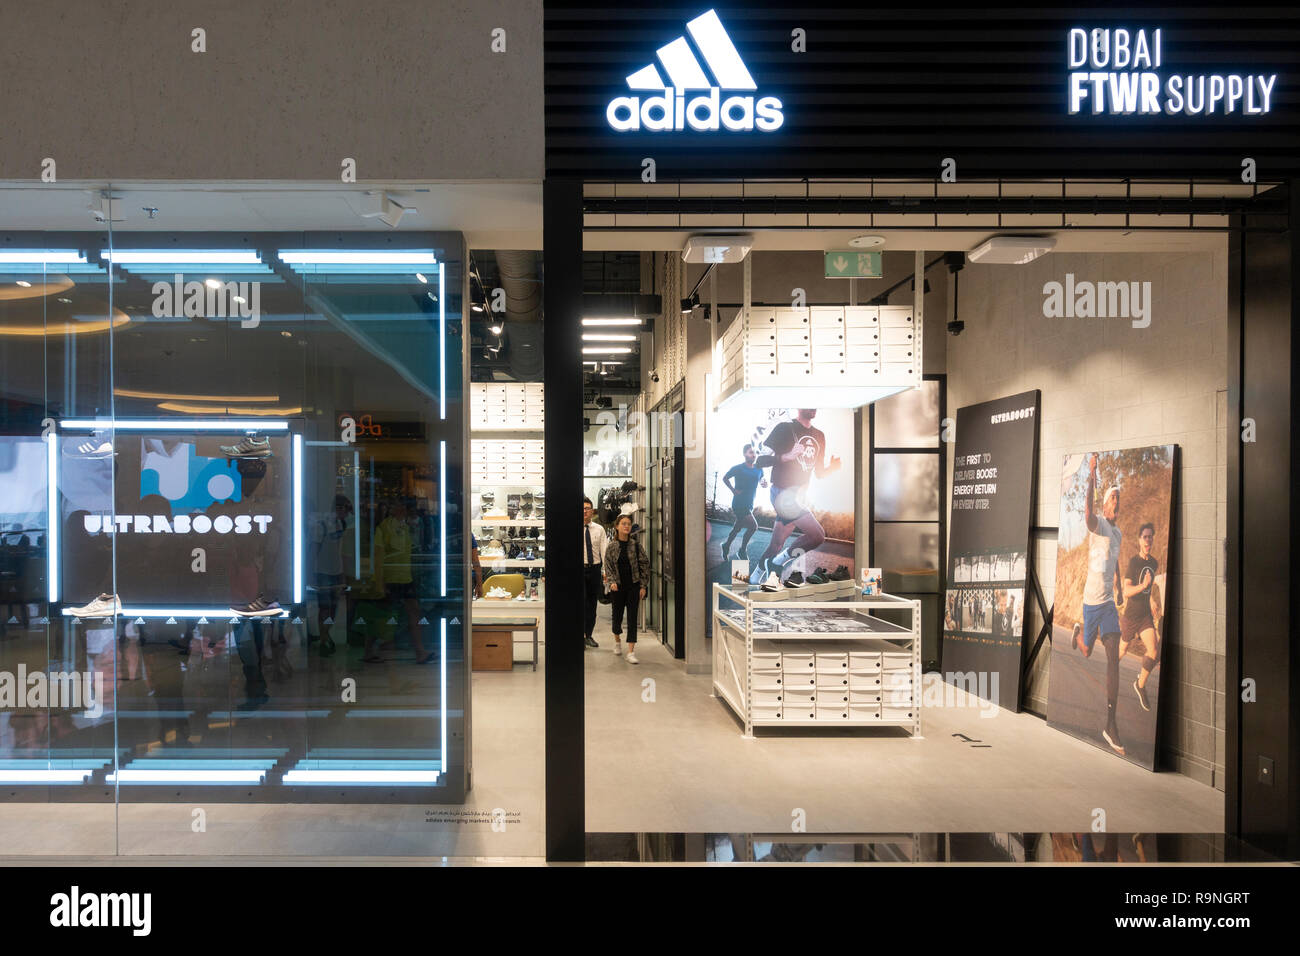 New Adidas footwear shop , Dubai FTWR Supply, inside Dubai Mall, Dubai,UAE - Stock Image